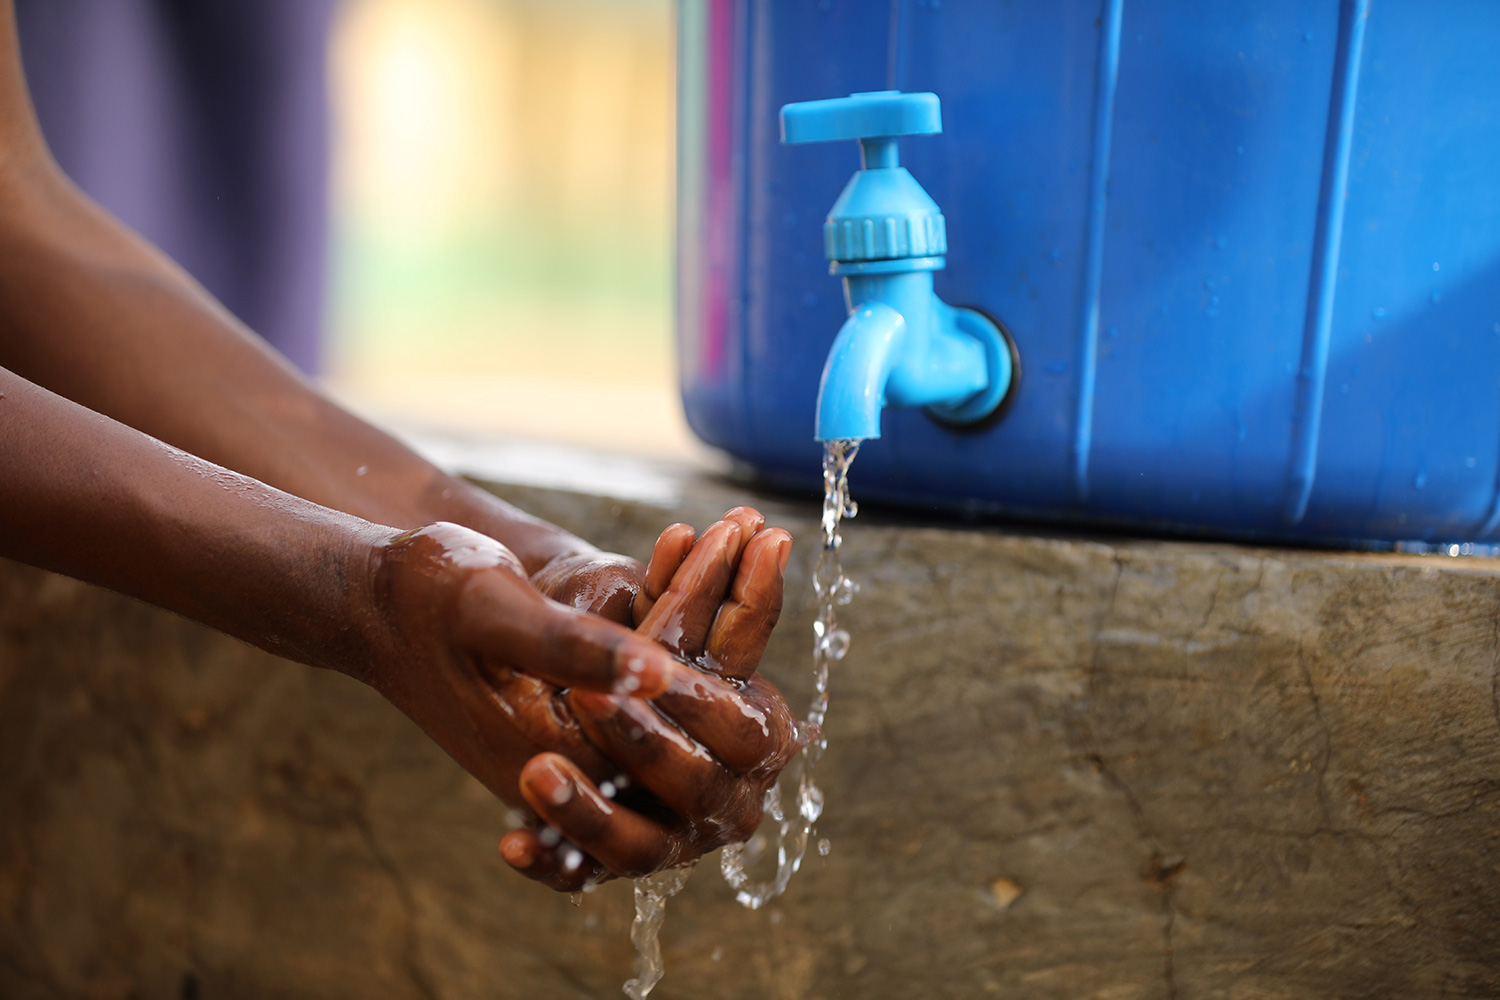 A student washes her hands after clean up at a school in response to the novel coronavirus pandemic in Abuja, Nigeria on March 20, 2020. The photo shows a pair of hands actively lathering under a water tap against a blue background. REUTERS/Afolabi Sotunde